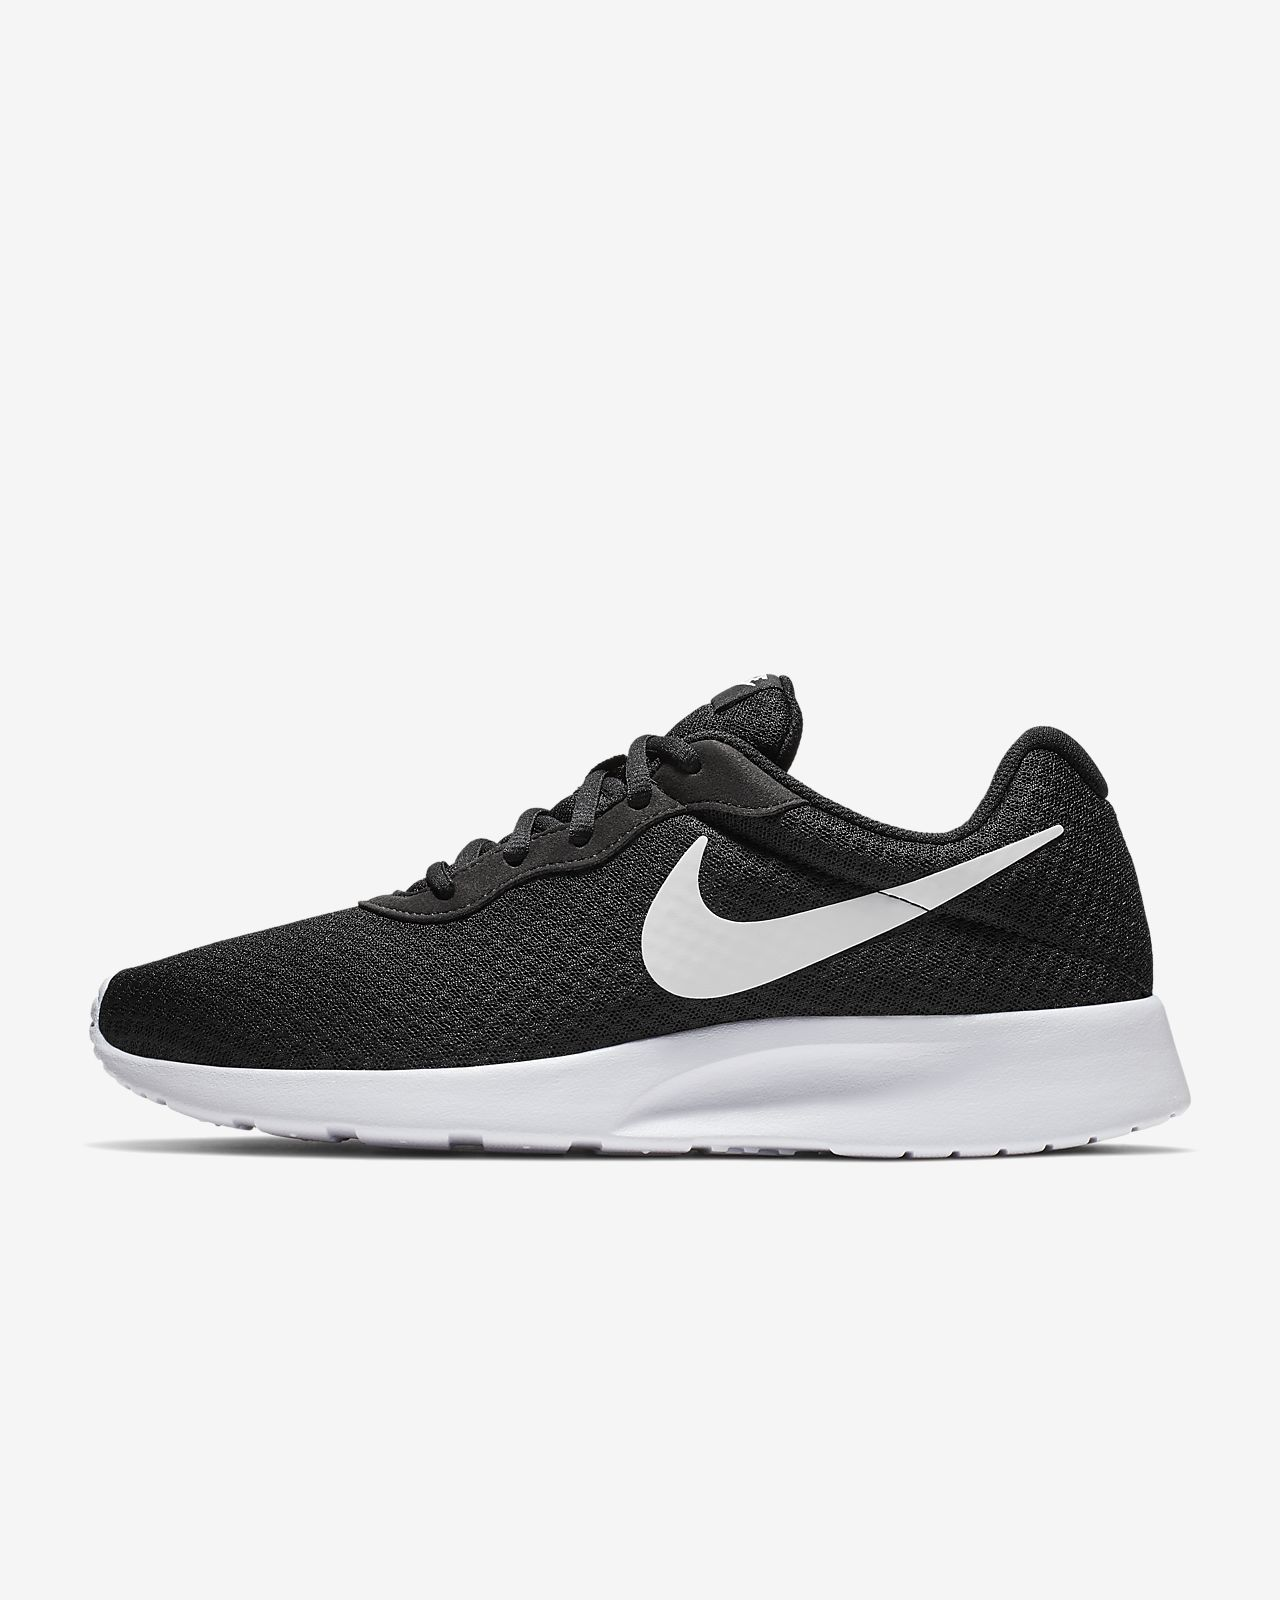 purchase cheap 3bb0a 811b4 Low Resolution Nike Tanjun Herrenschuh Nike Tanjun Herrenschuh